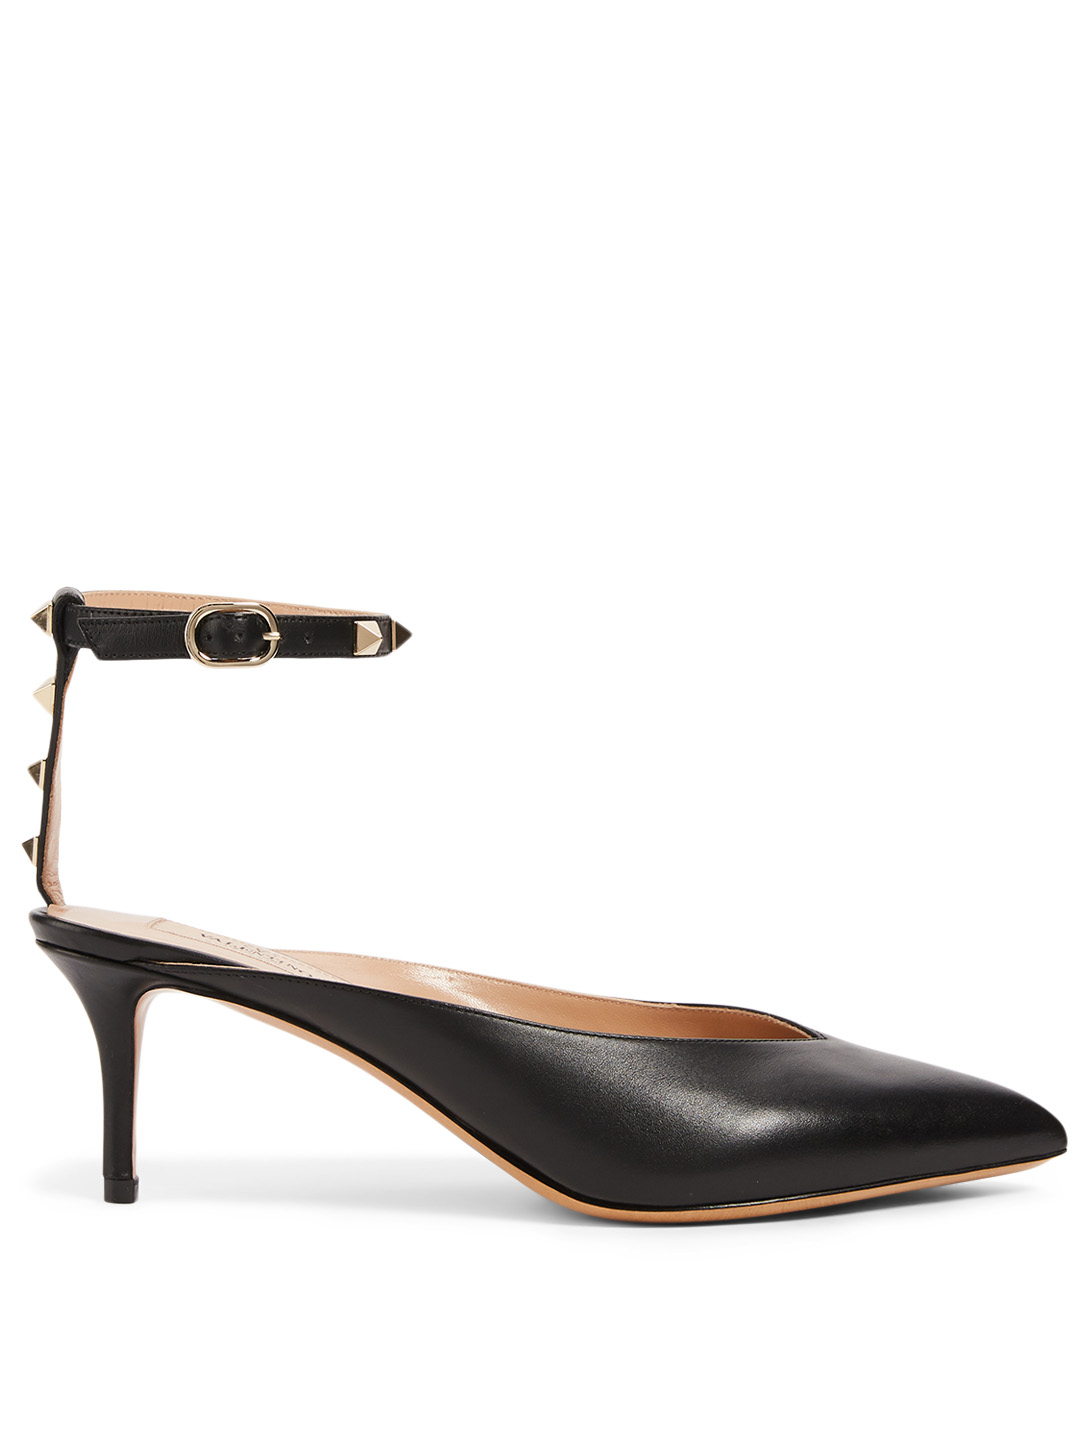 VALENTINO GARAVANI Rockstud Hype Leather Pumps Women's Black